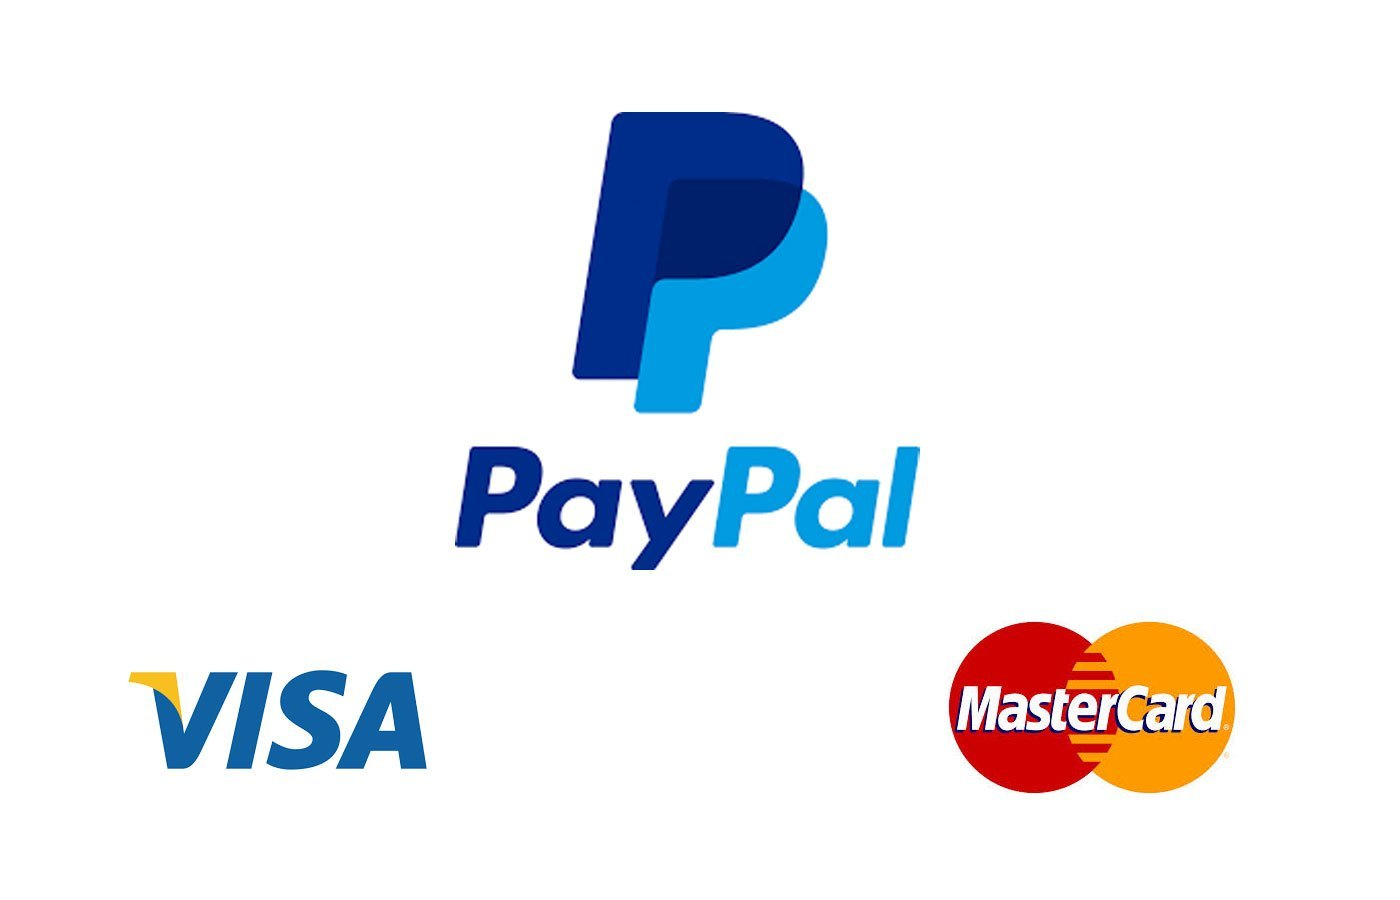 how to create paypal account in nigeria